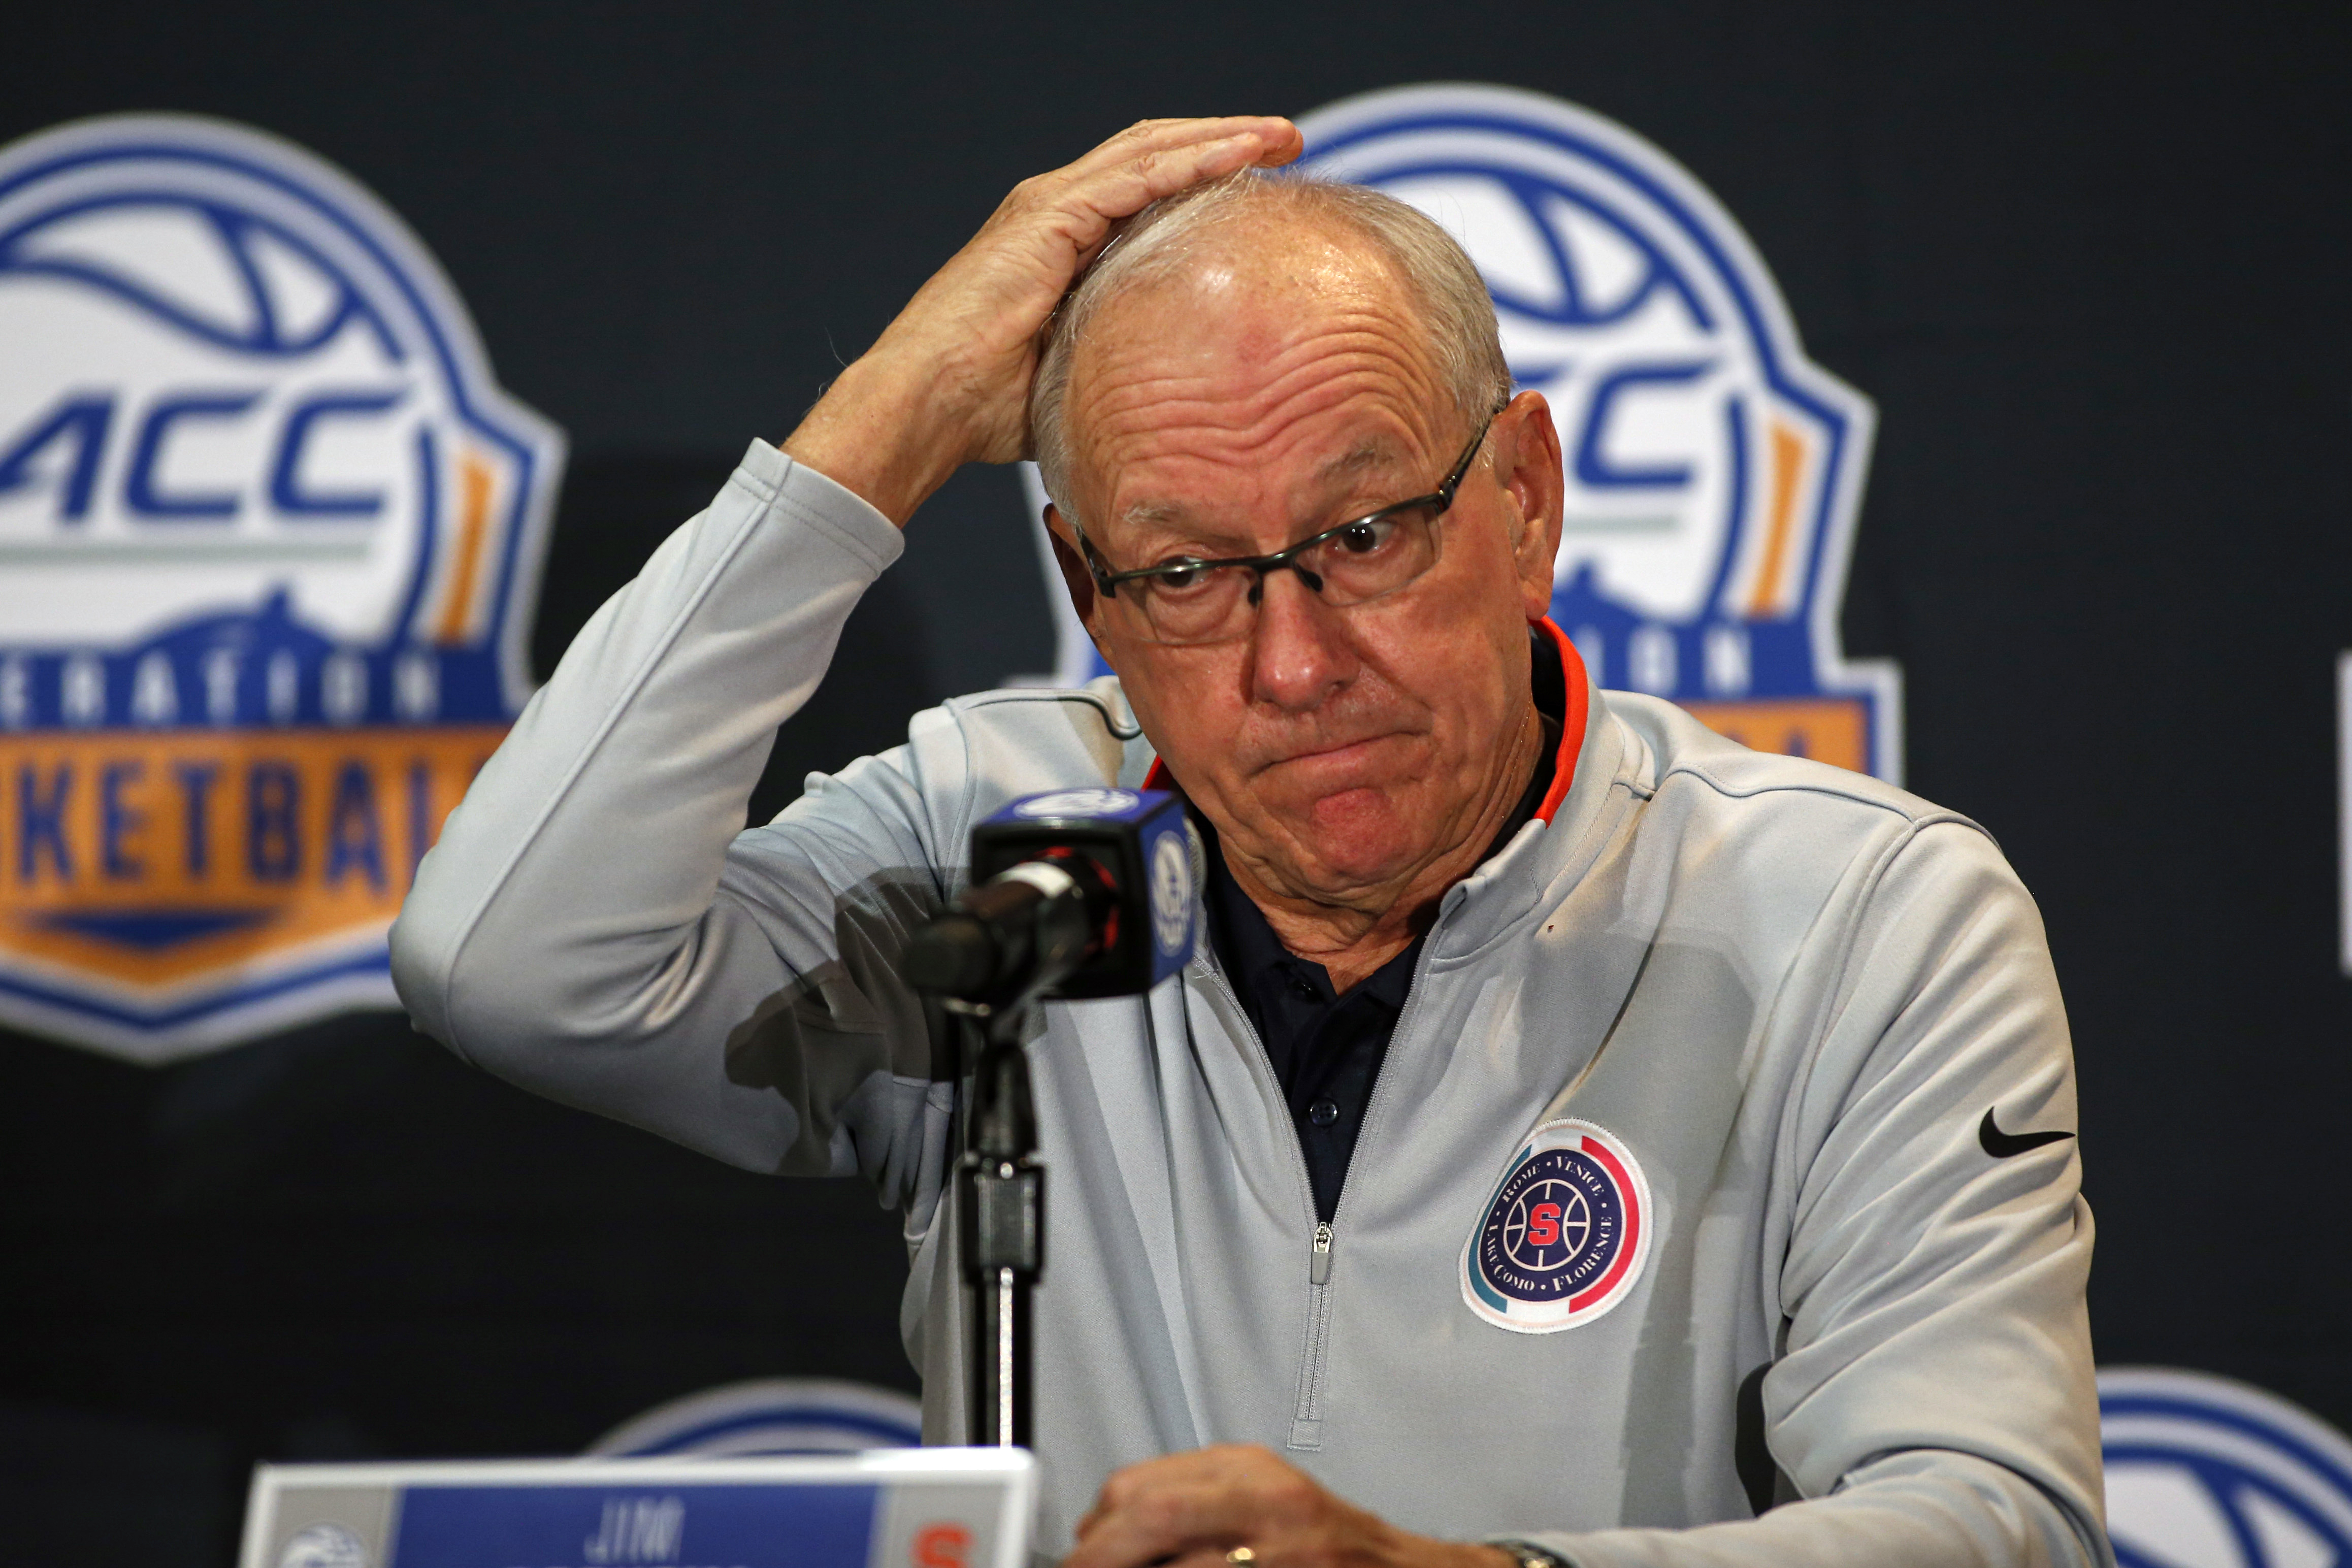 Syracuse's Jim Boeheim supports paying players but has concern about fairness